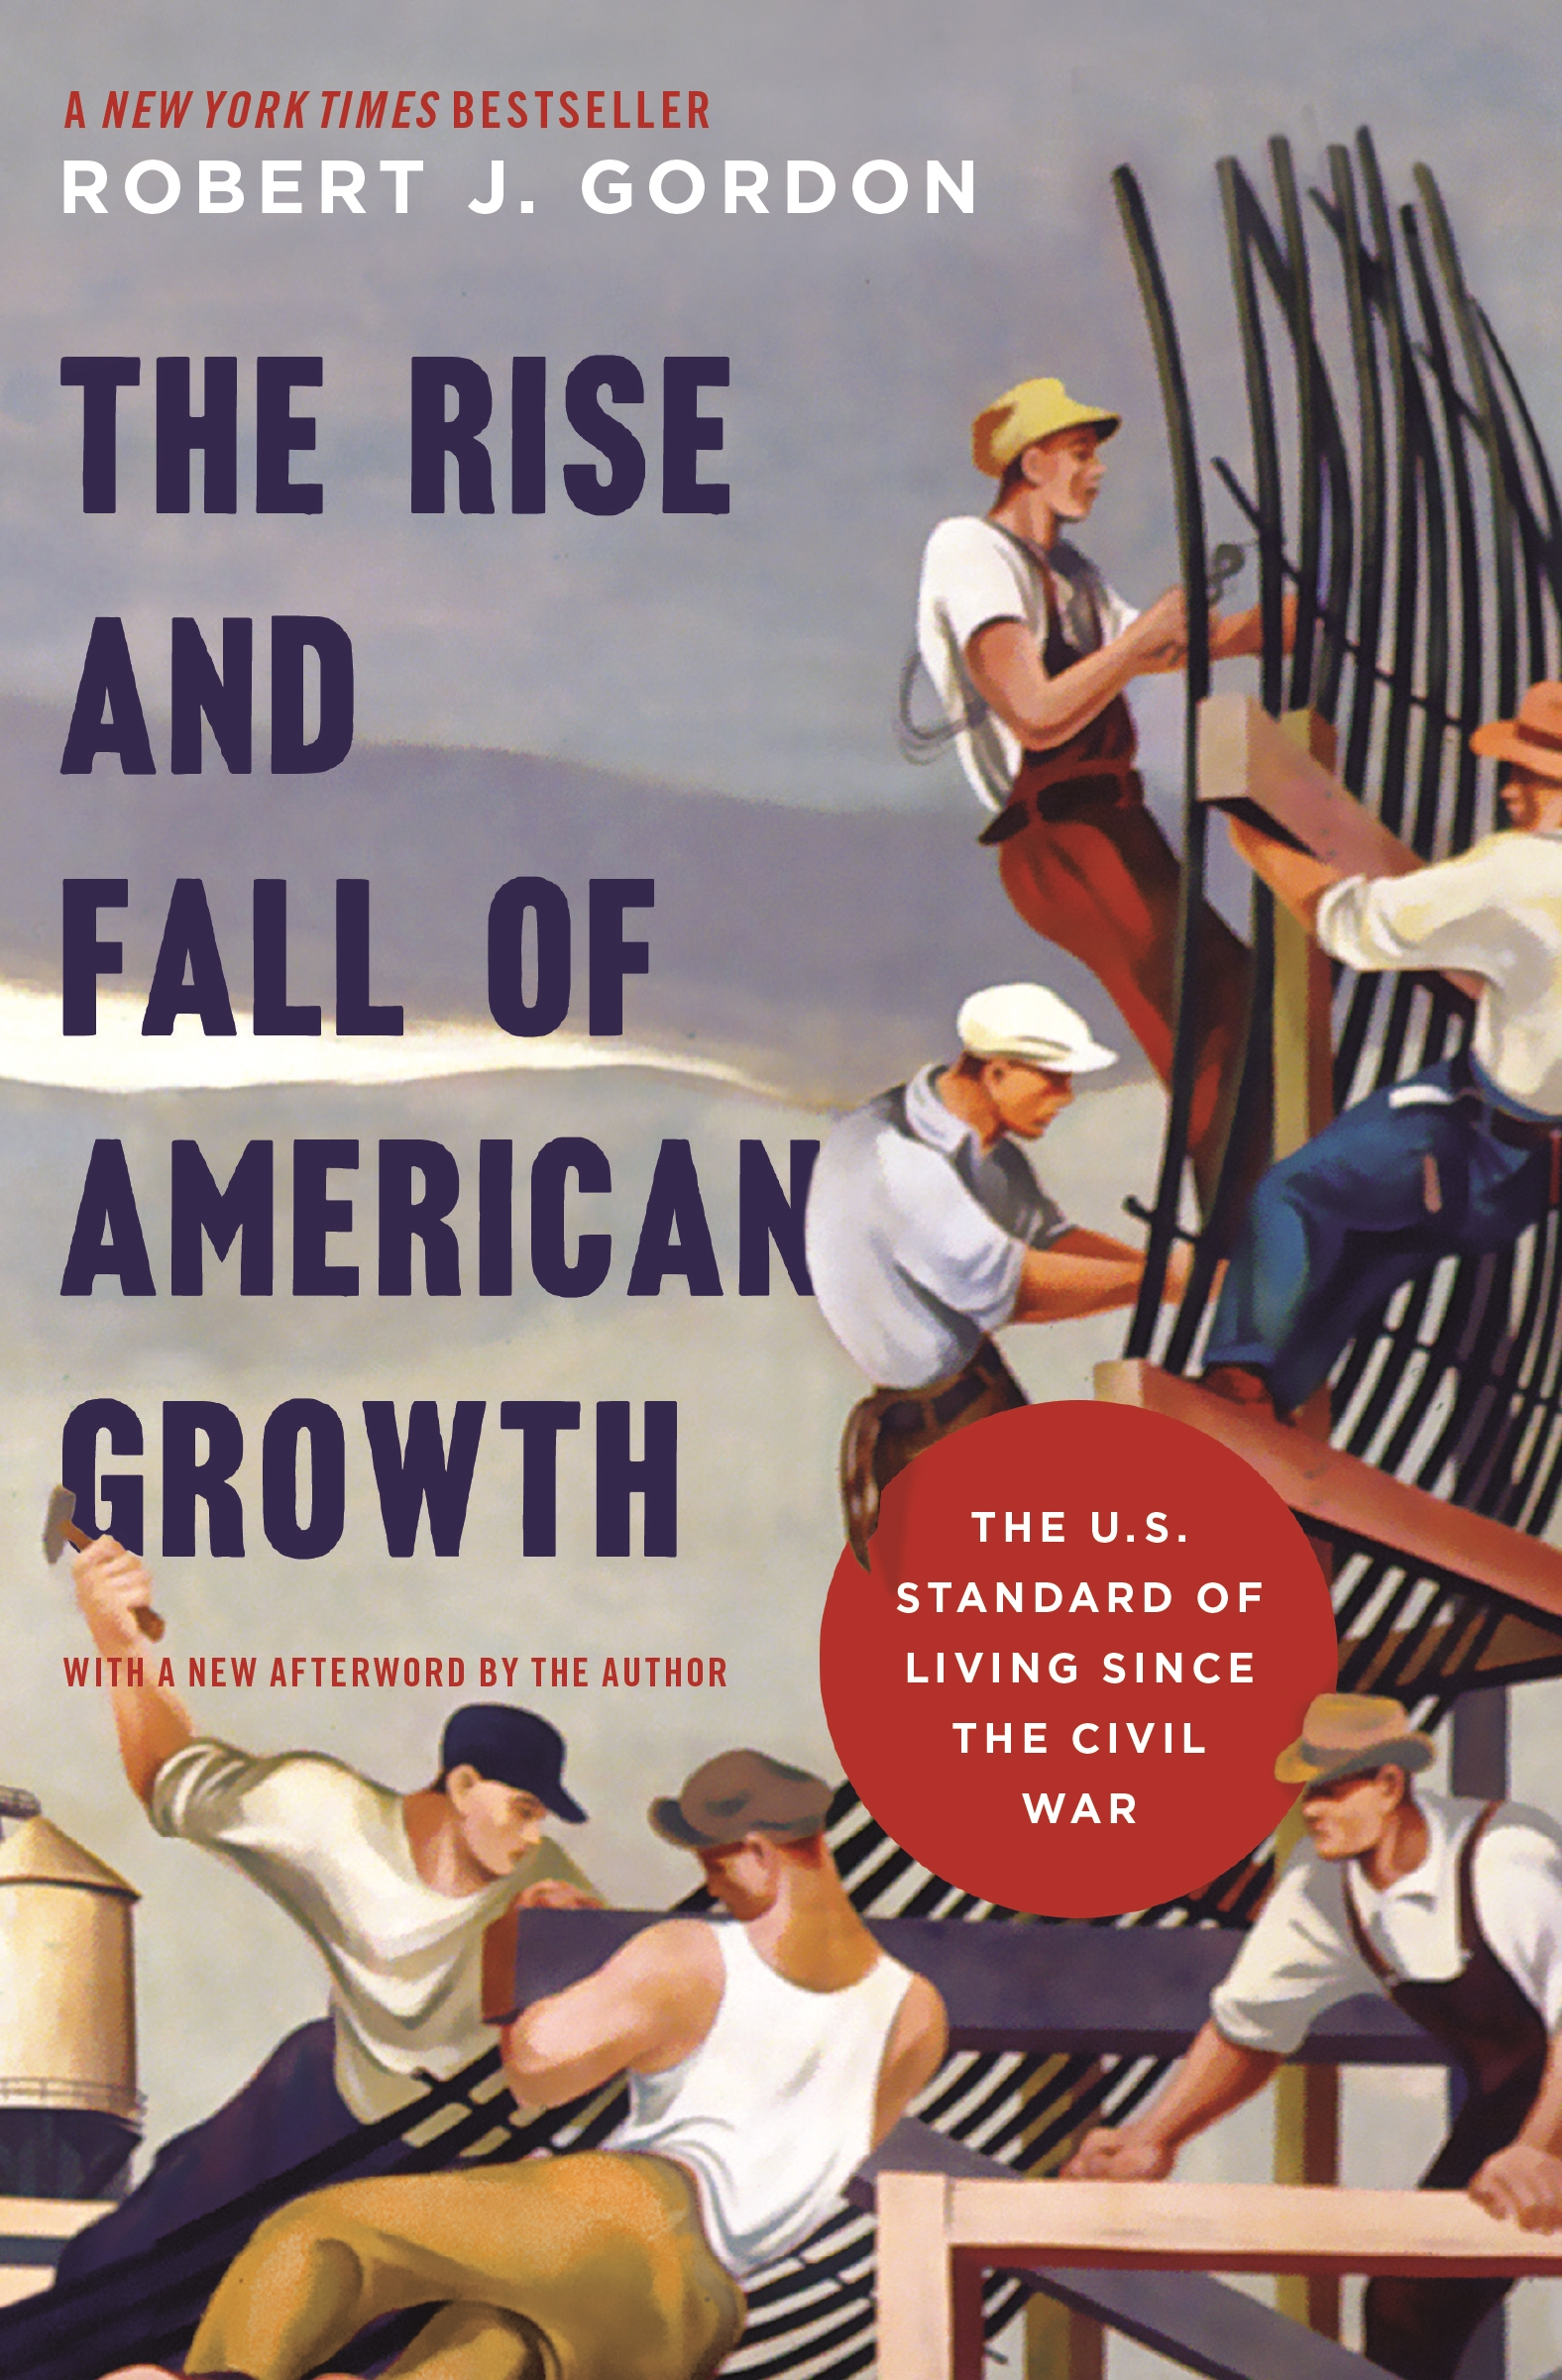 Download Ebook The Rise and Fall of American Growth by Robert J. Gordon Pdf